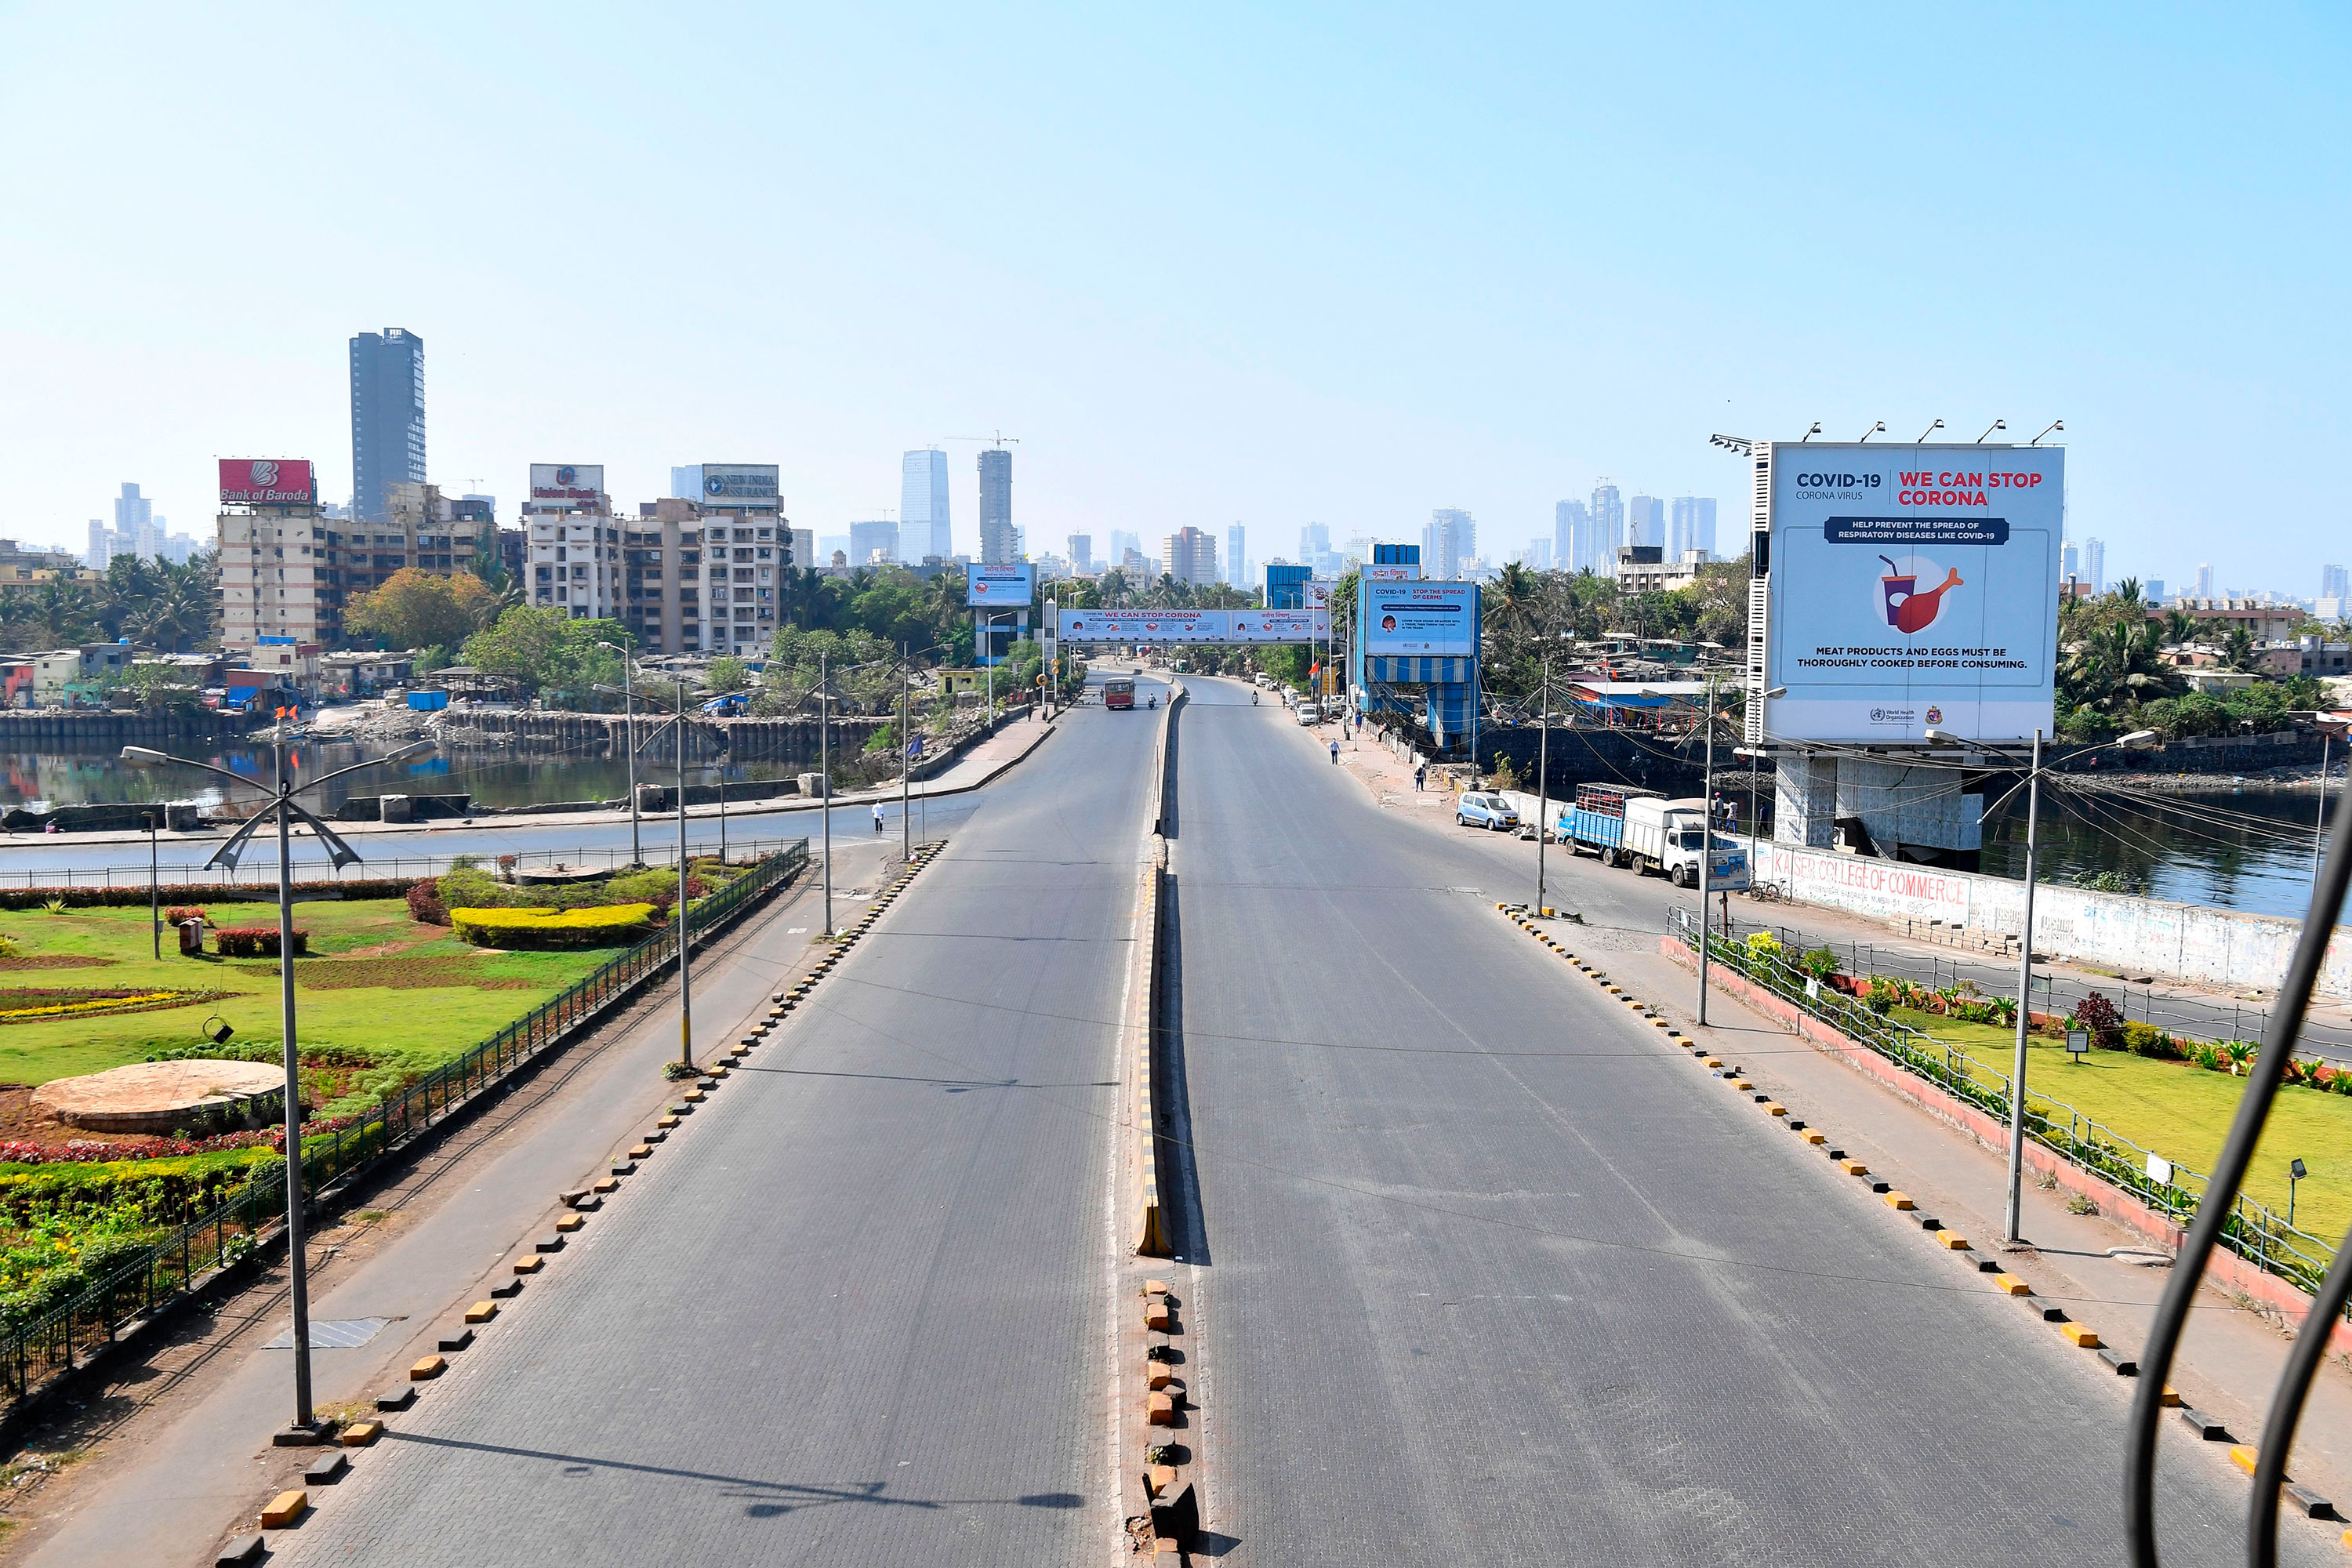 A nearly empty street is seen in Mumbai, India on March 22.